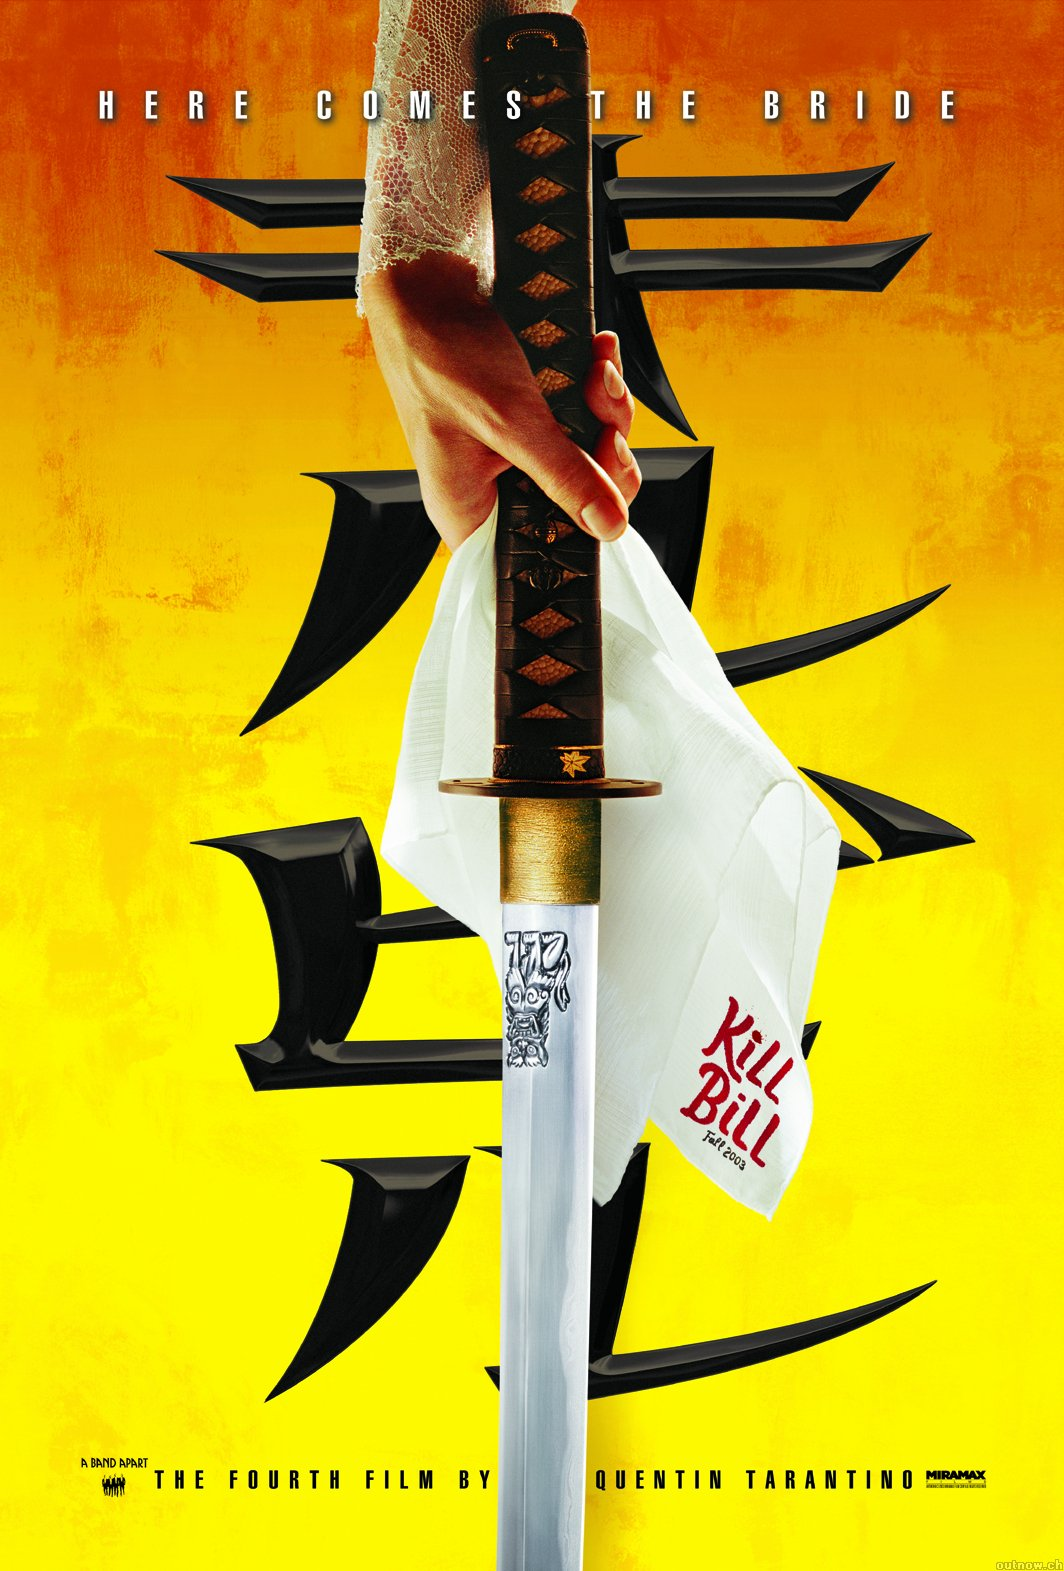 movie posters for movieid 513 kill bill volume 1 2003 by quentin tarantino. Black Bedroom Furniture Sets. Home Design Ideas